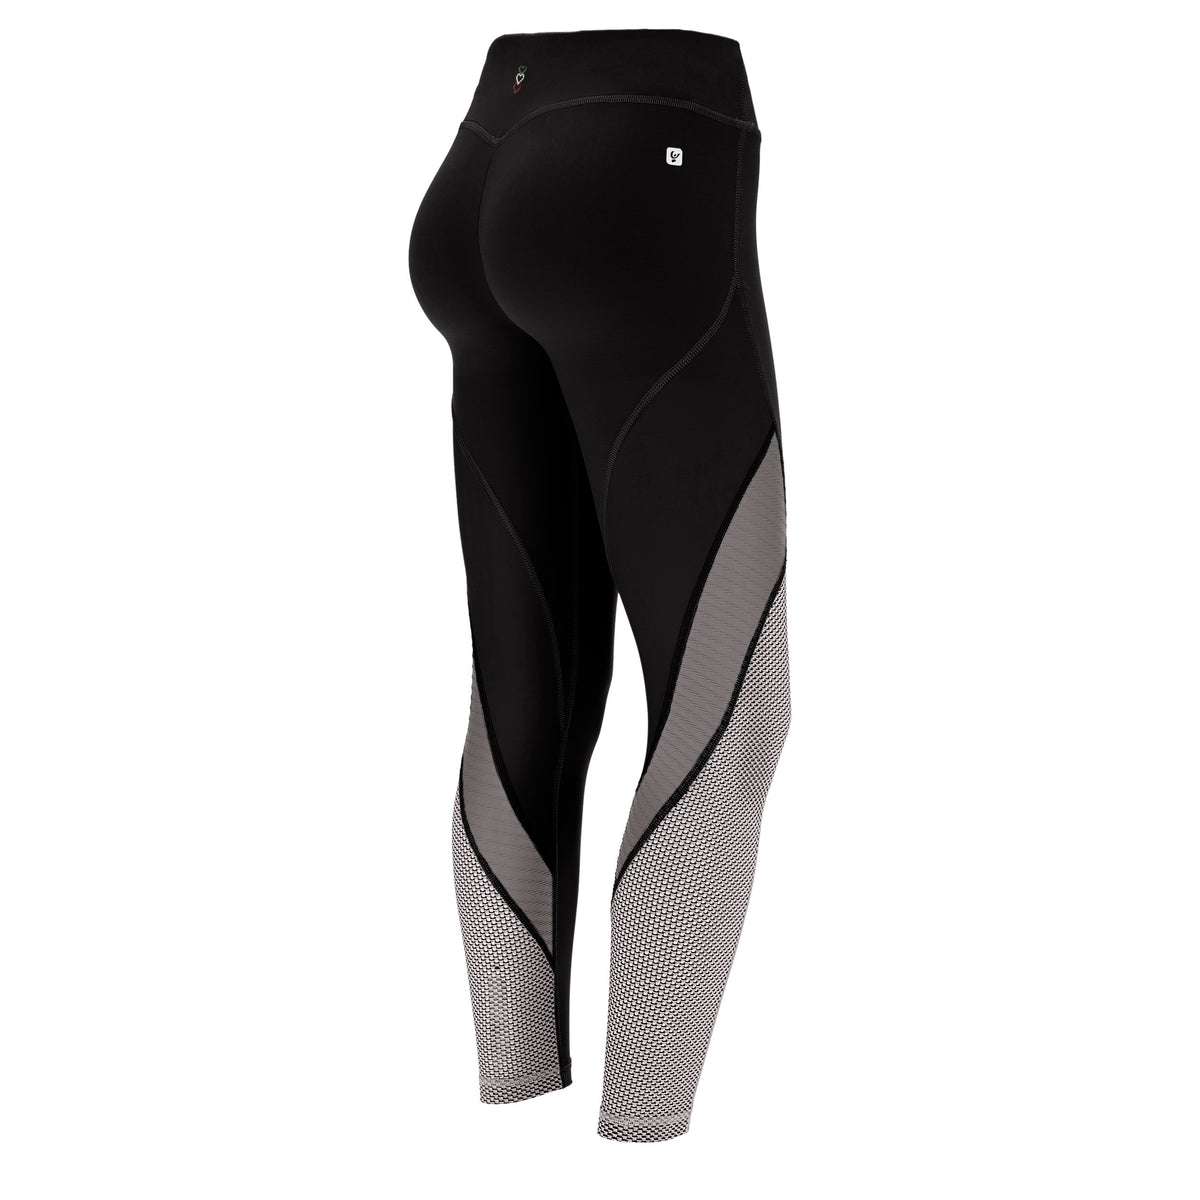 MII MID RISE SPORTS LEGGINGS